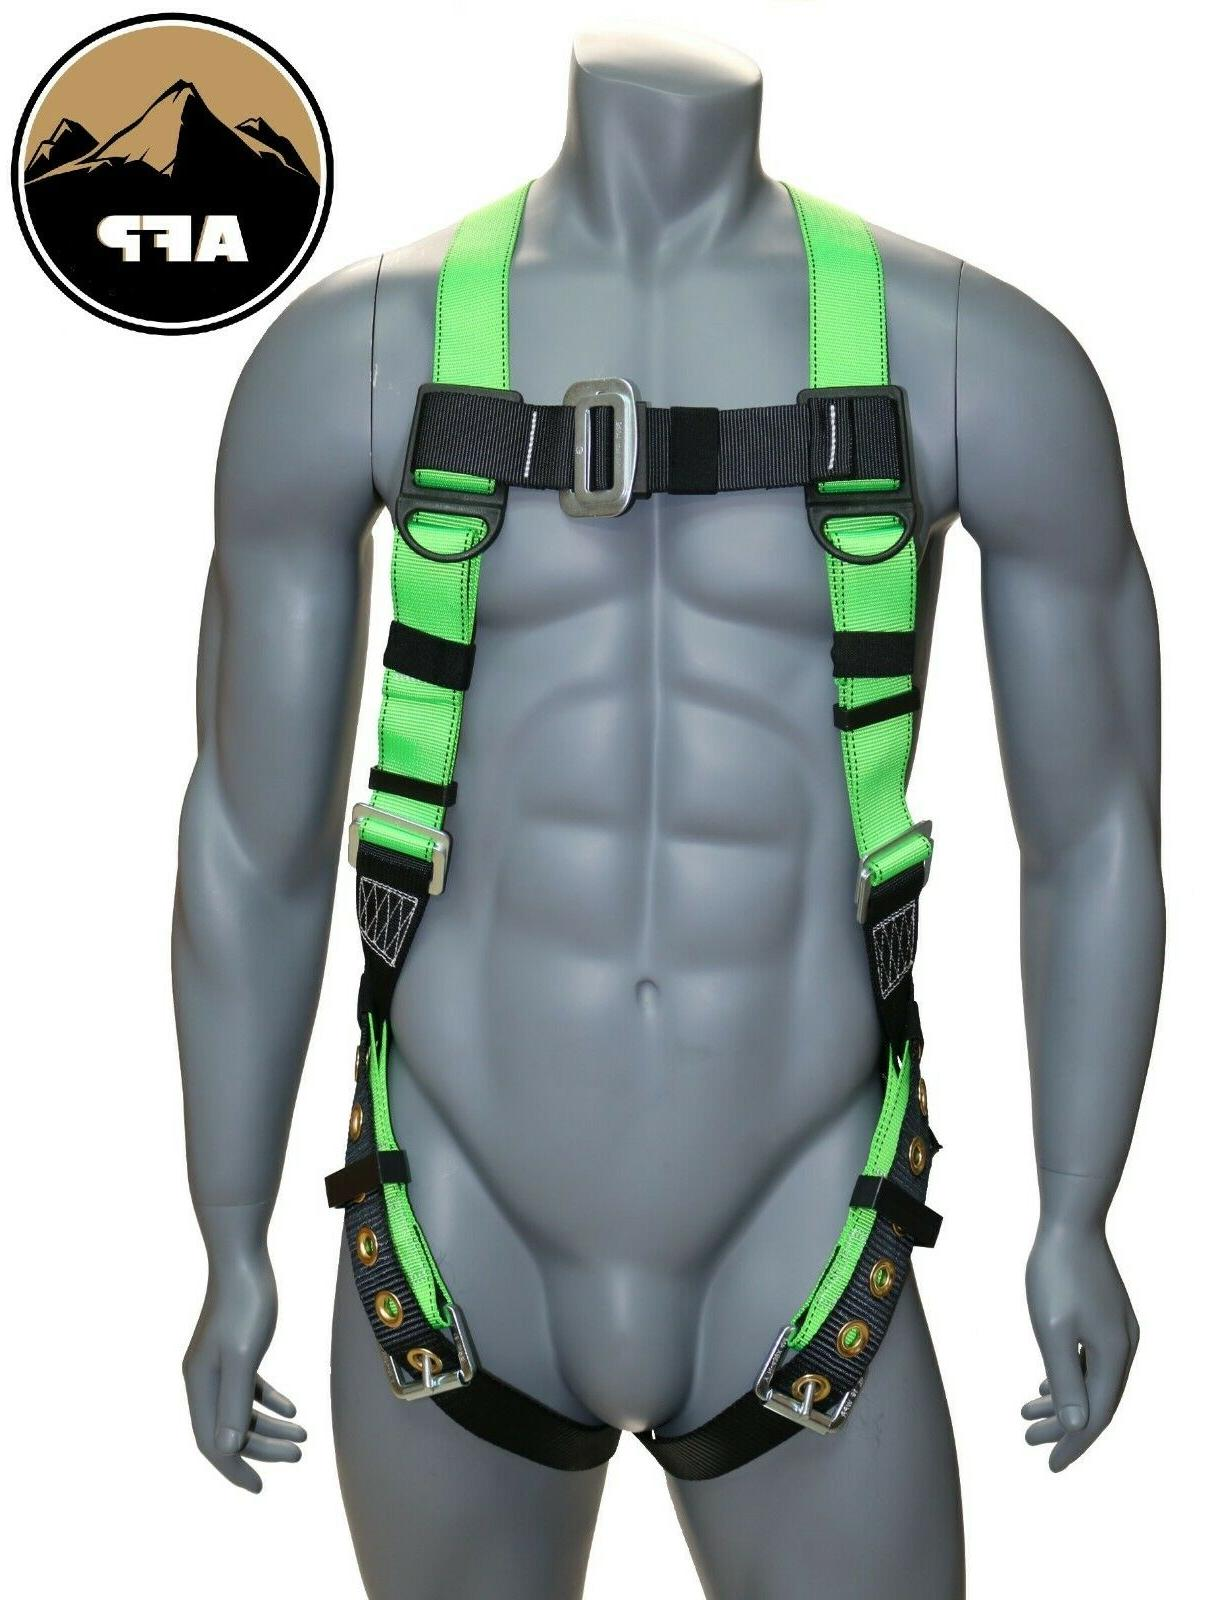 universal full body safety harness with dorsal